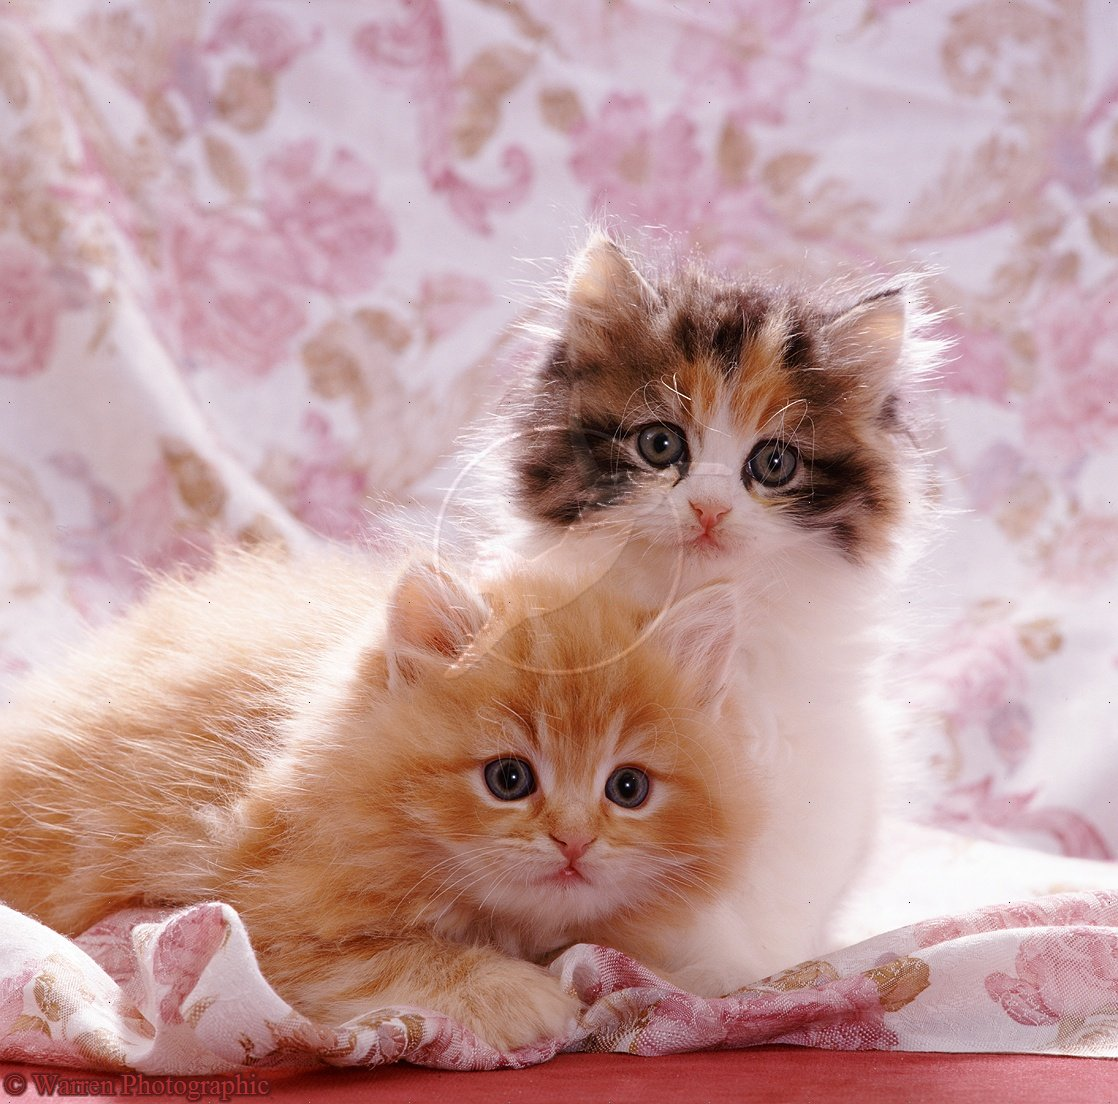 Very cute kitten wallpaper wallpapersafari cute dogspets cute cats and kittens pictures and wallpapers 1118x1104 thecheapjerseys Gallery